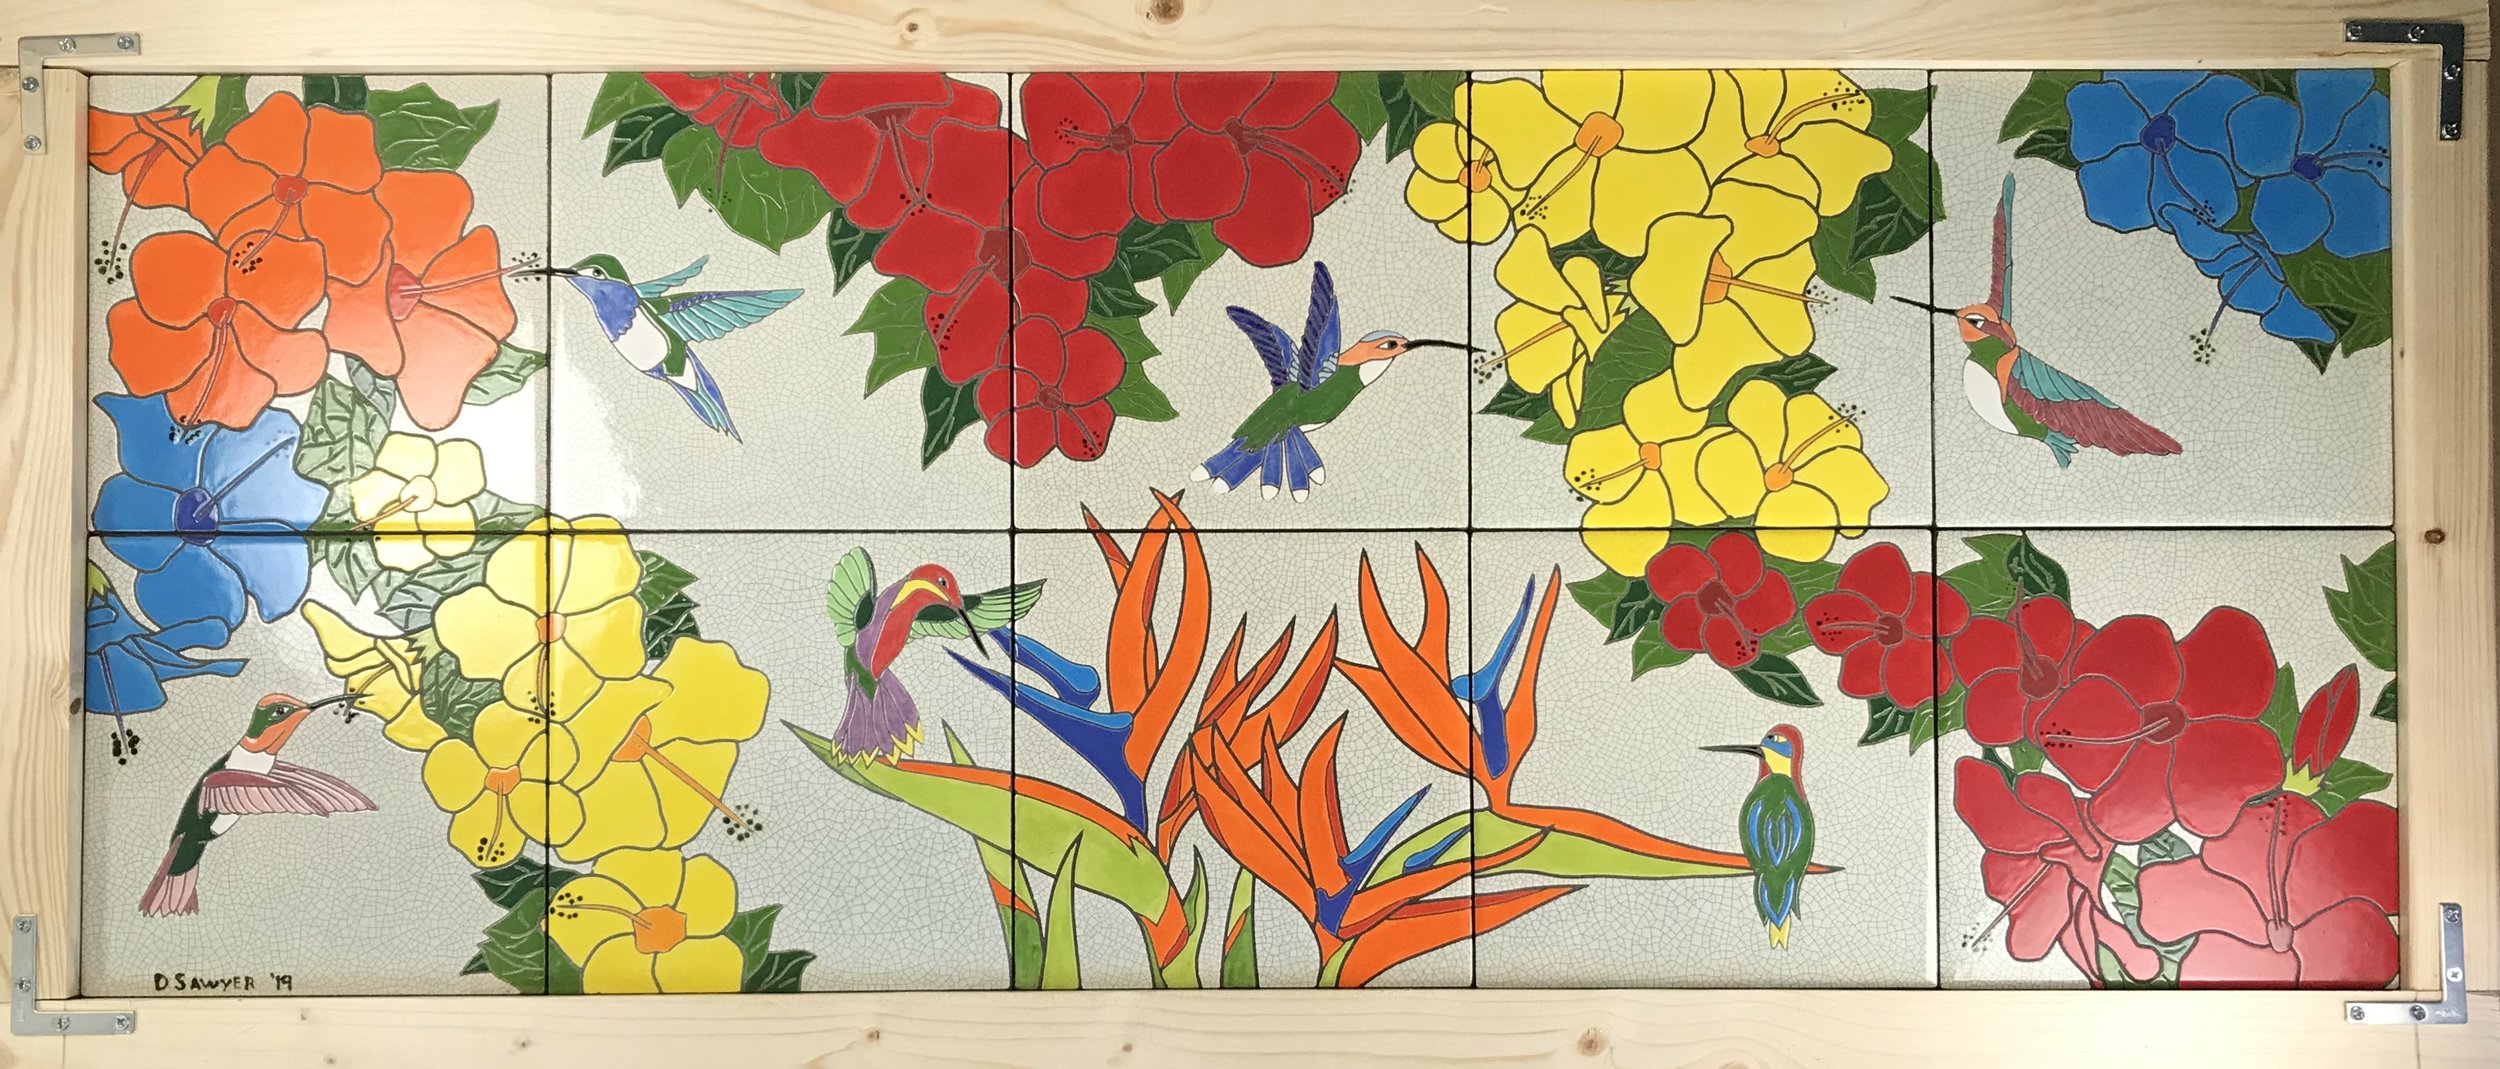 Floribbean Afternoon art tile mural